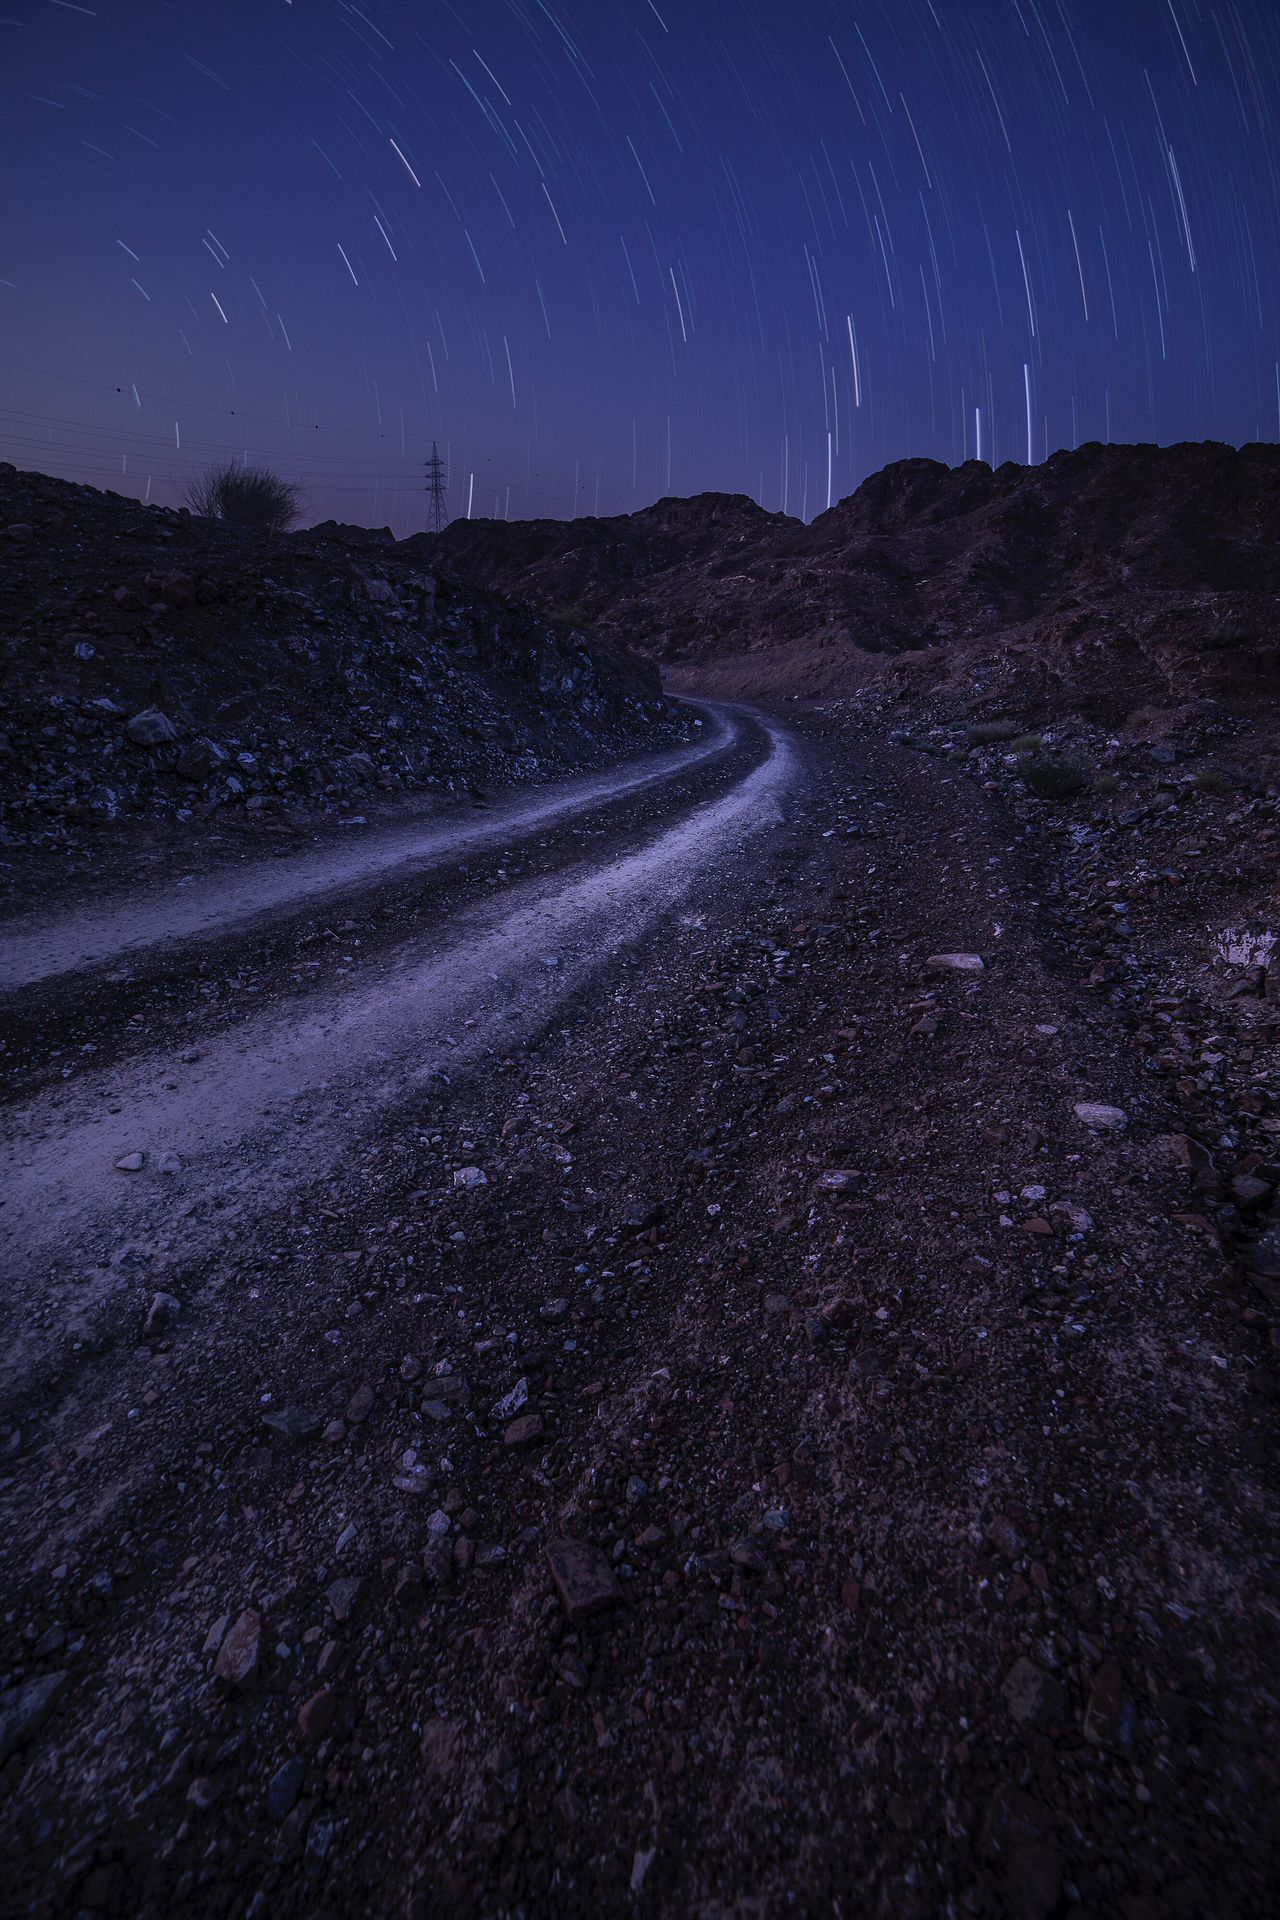 Star - Space Night Astronomy Long Exposure Space And Astronomy Star Field Constellation Space Star Trail Milky Way Astrology Sign Road Scenics Nature Beauty In Nature Galaxy Landscape Clear Sky Sky Illuminated